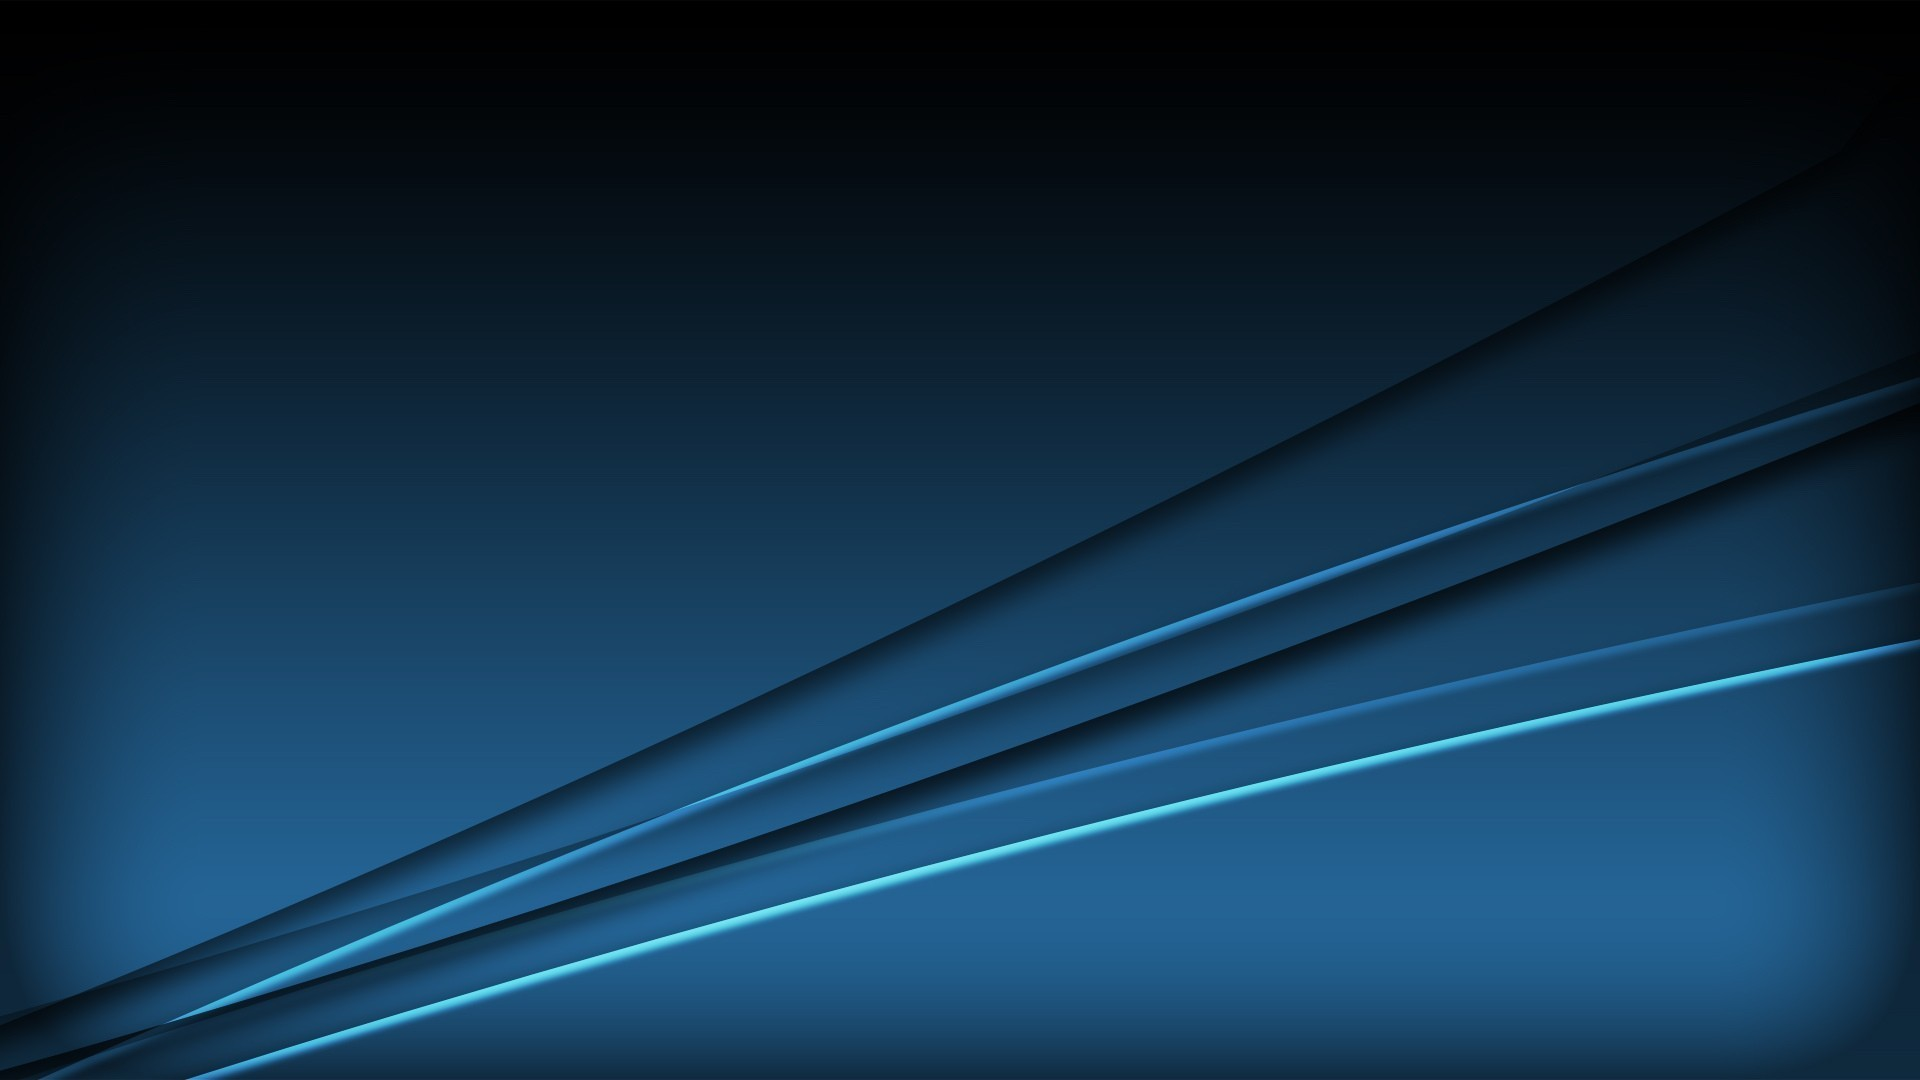 Res: 1920x1080, Abstract blue minimalistic computer graphics wallpaper